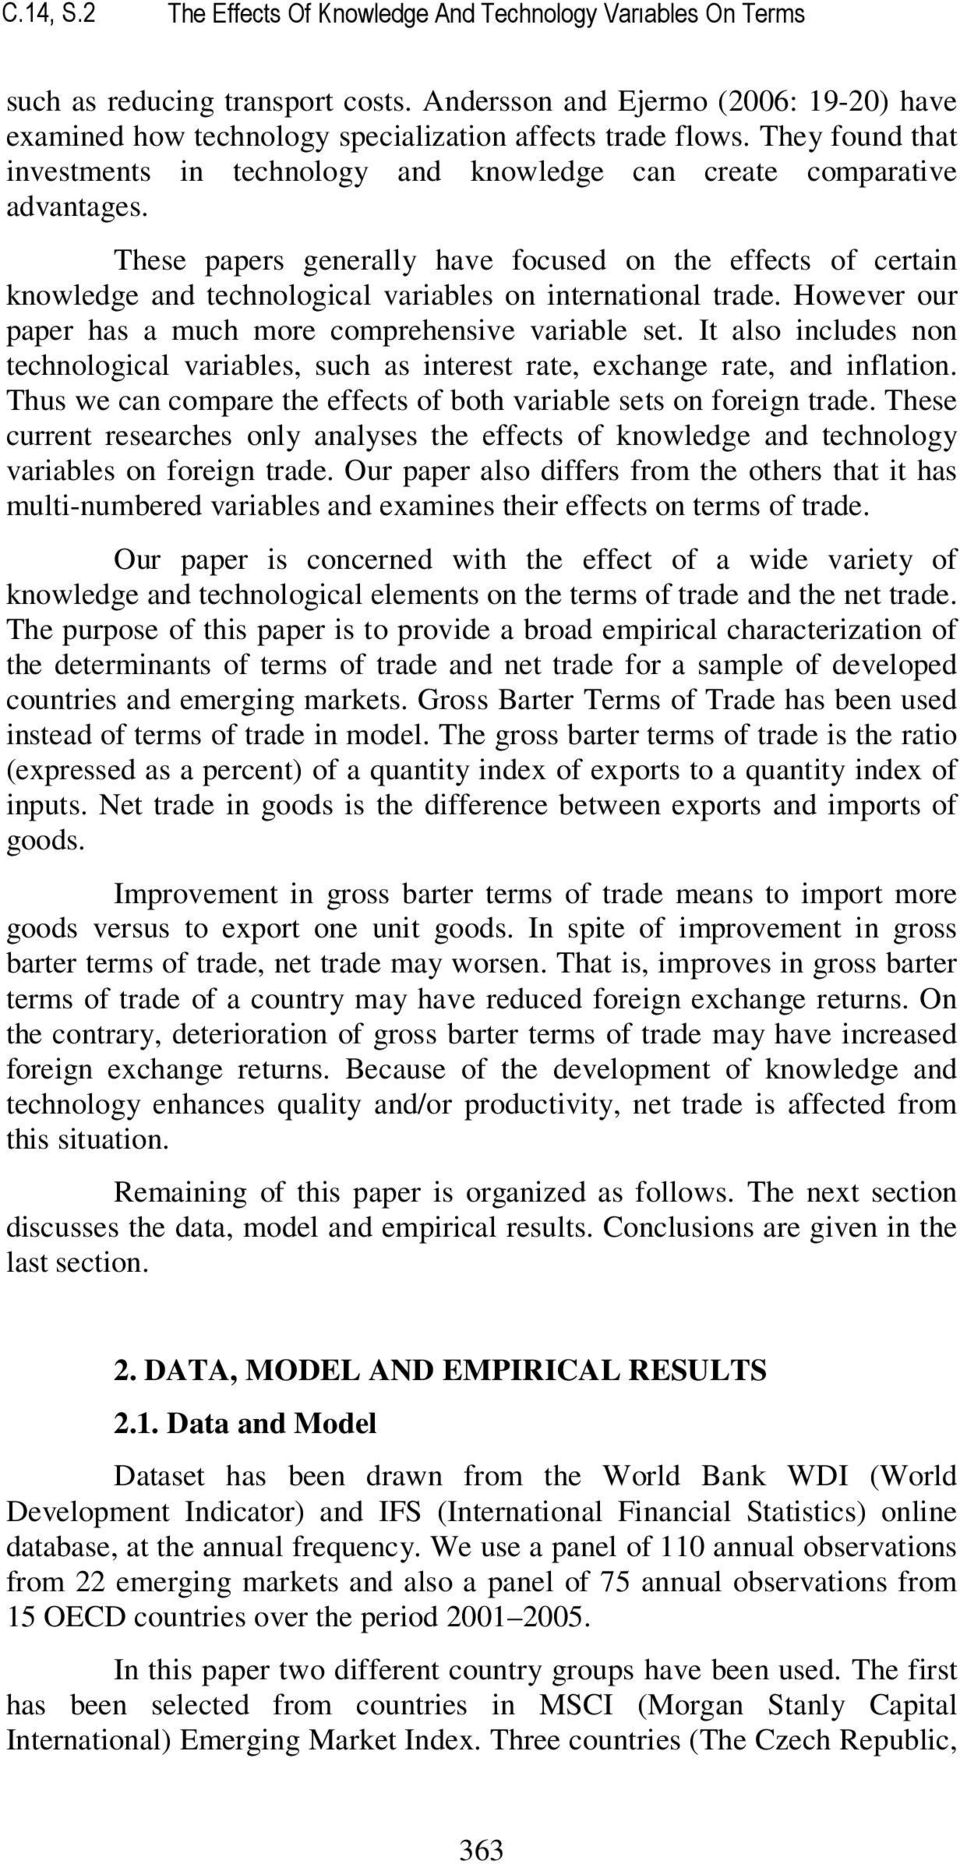 These papers generally have focused on the effects of certain knowledge and technological variables on international trade. However our paper has a much more comprehensive variable set.